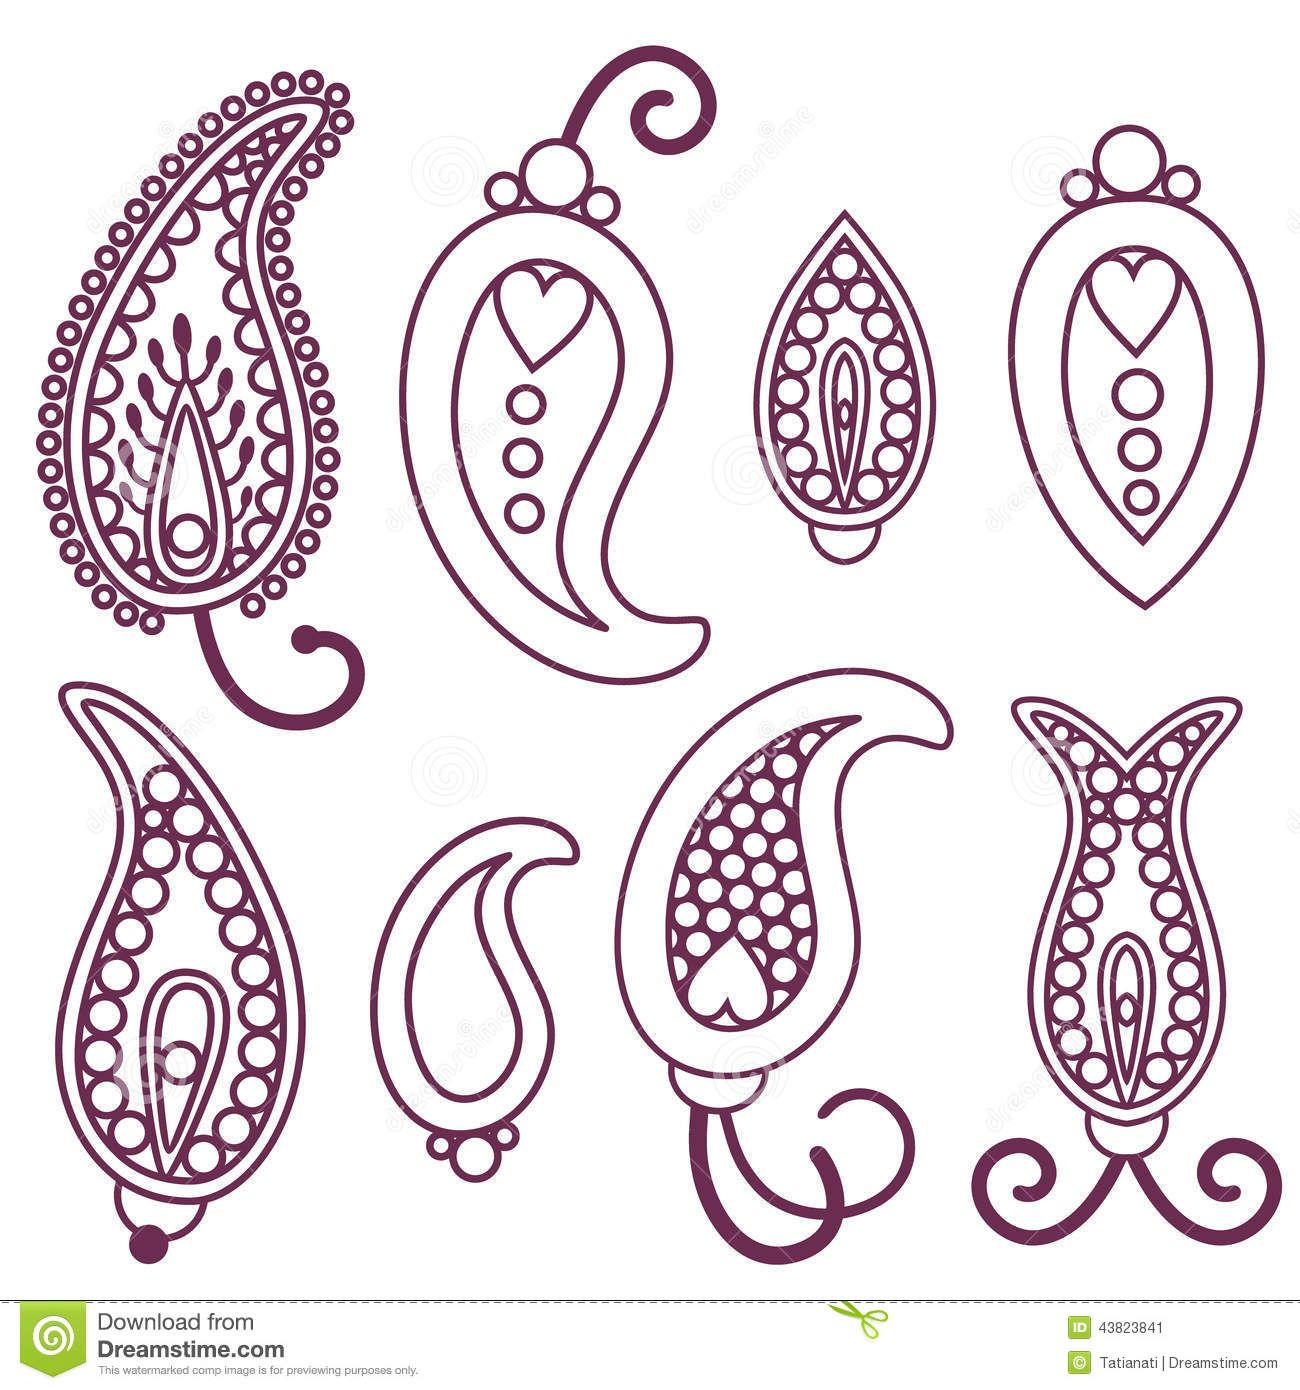 Name Paisley Purple Petals Previewpng Resolution 1500